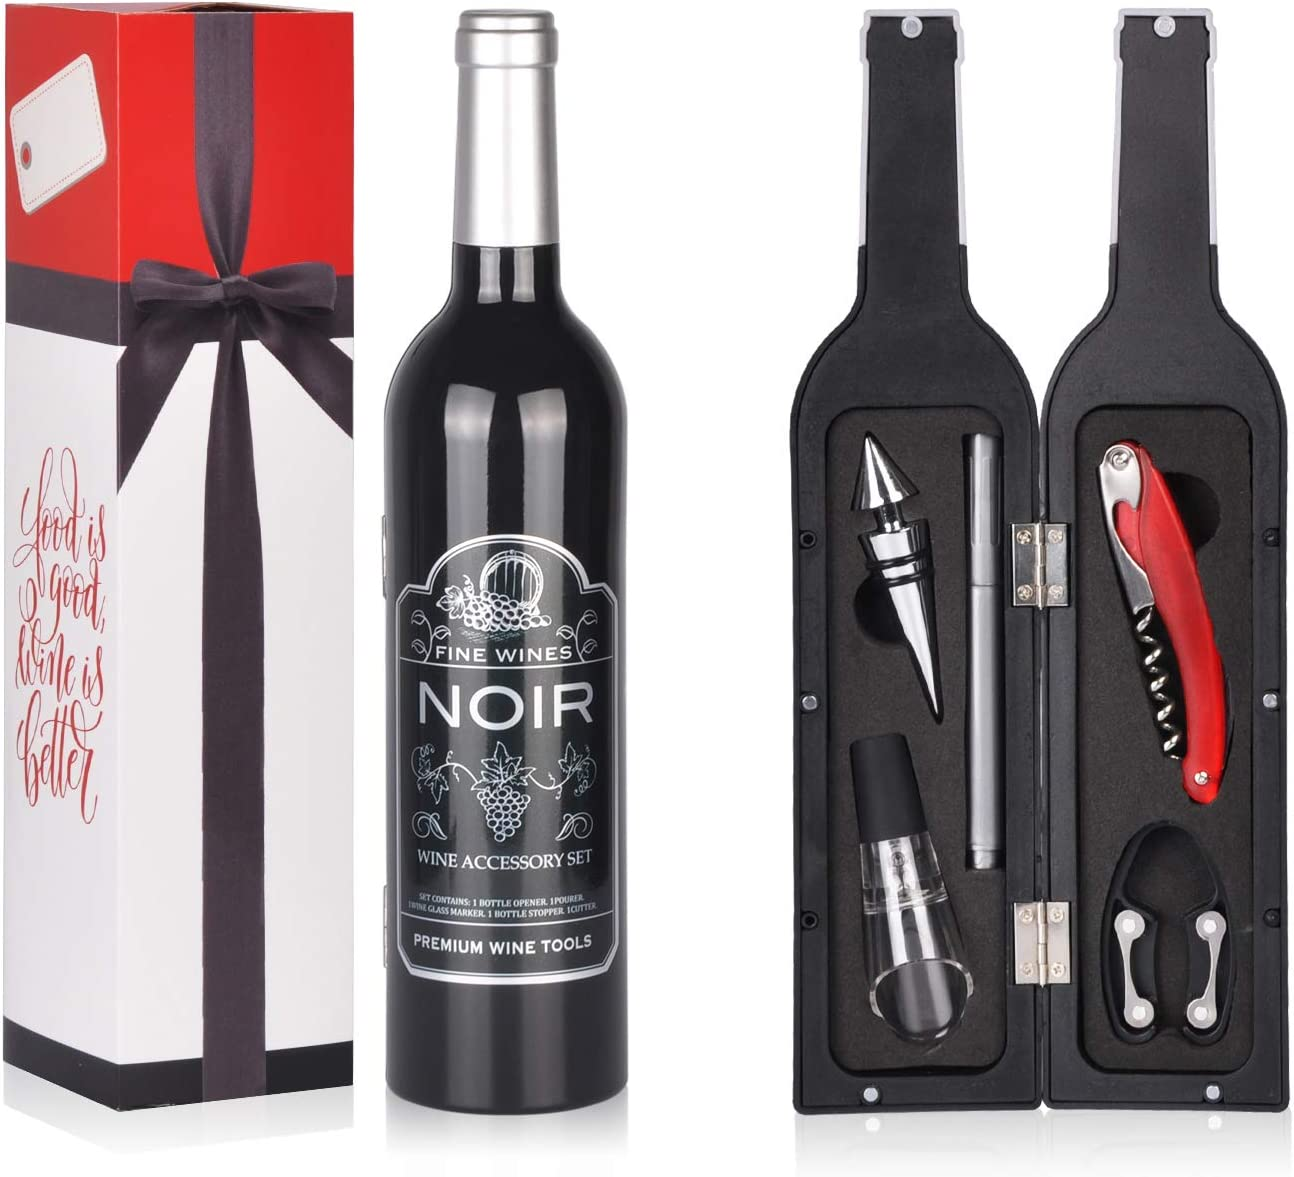 Wine Accessory Gift Set - Deluxe Wine Bottle Corkscrew Opener, Stopper, Aerator Pourer, Foil Cutter, Glass Paint Marker w/Reusable Drink Stickers in Gift Box, Wine Gifts for Wine Lover, Christmas